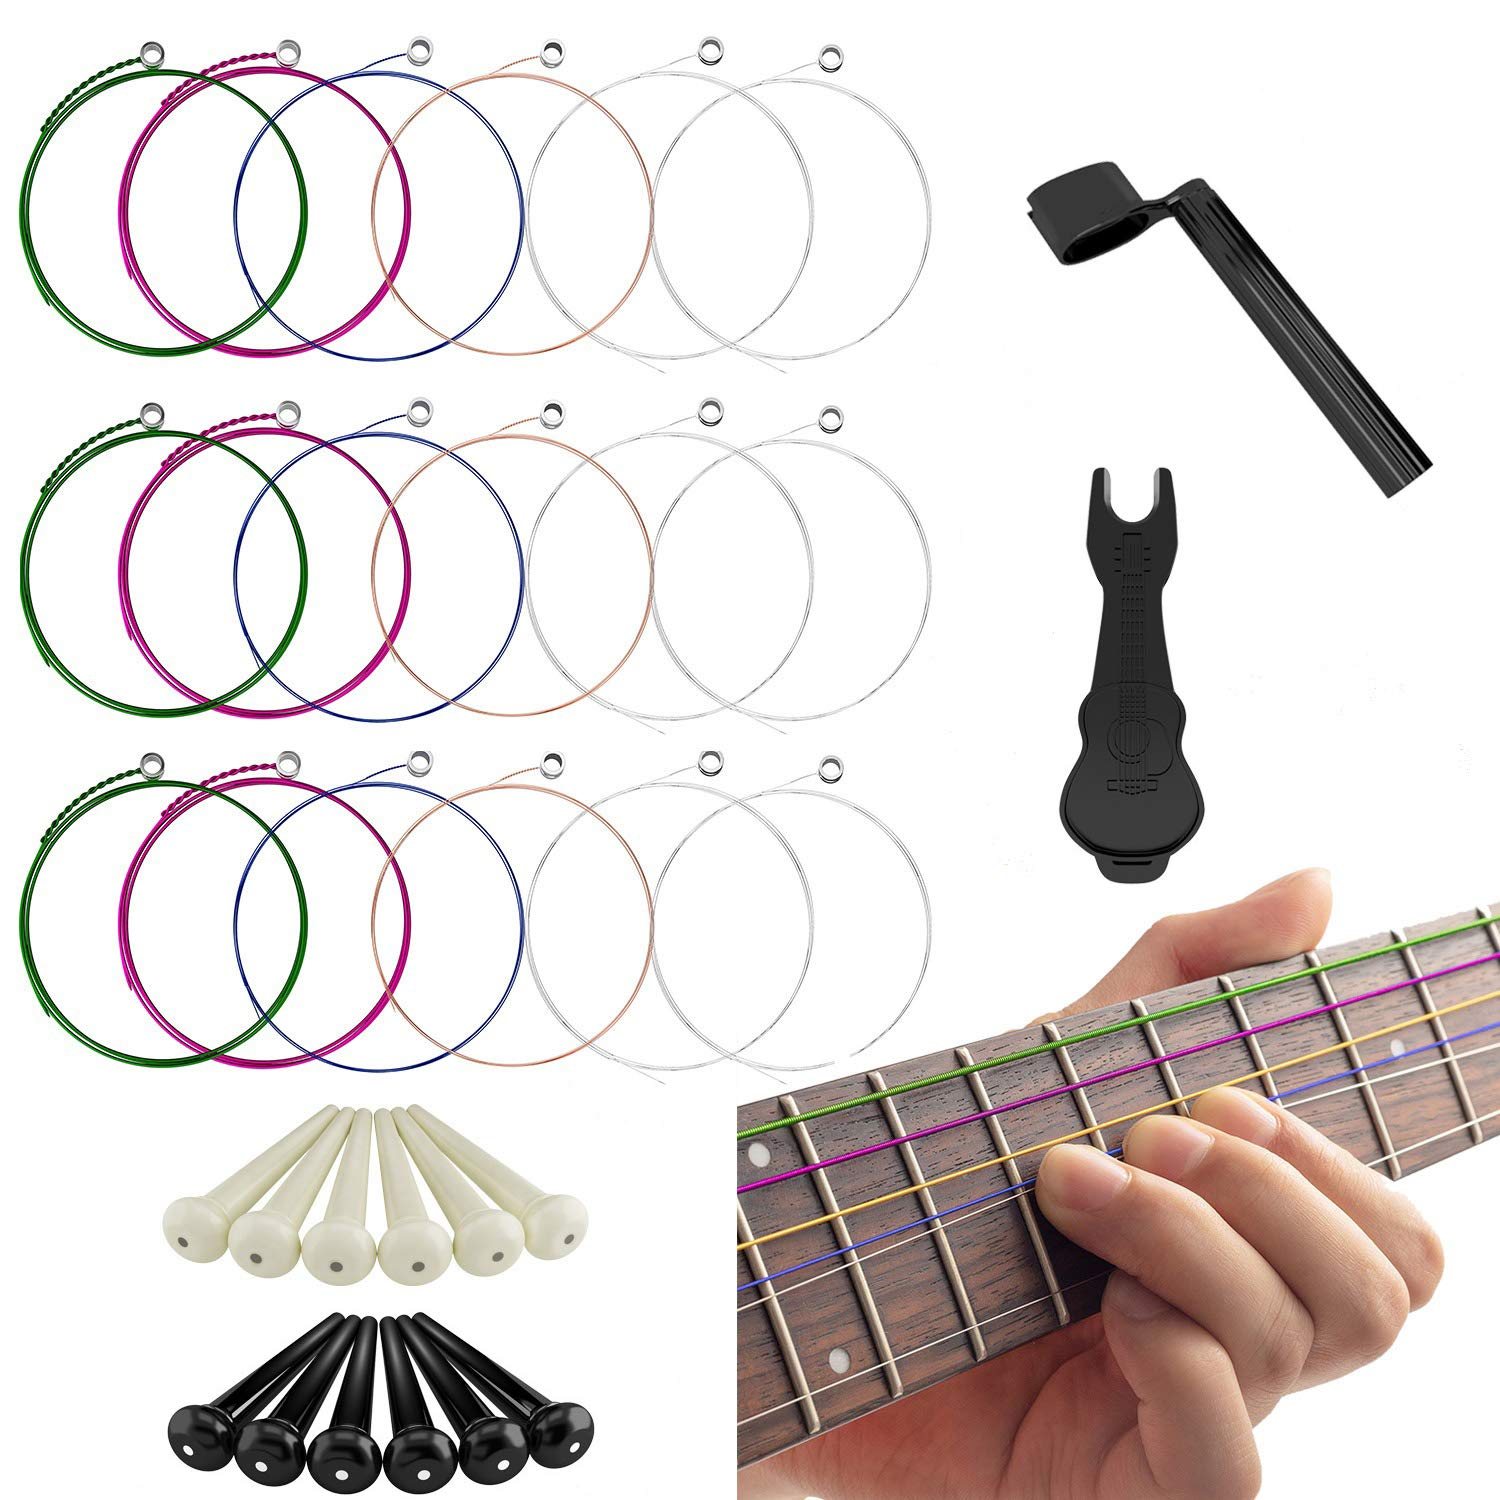 17 Pieces Acoustic Guitar Strings, Changing Kit Guitar Tool Strings Winder, Pin Puller, Plastic Bridge Pins Fullsexy